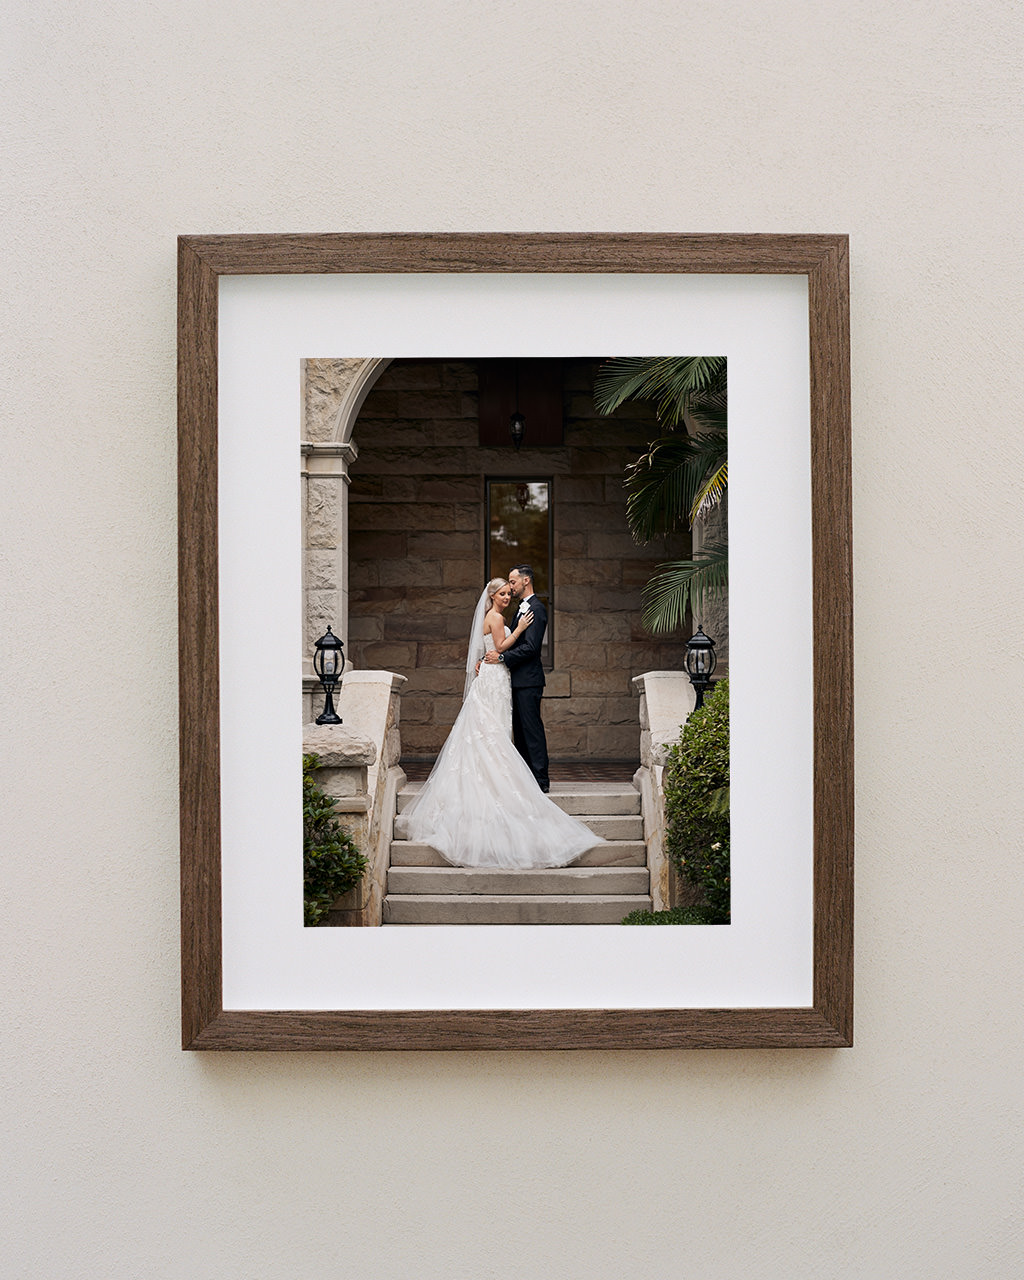 Framed portrait of couple on stairs at Curzon Hall wedding